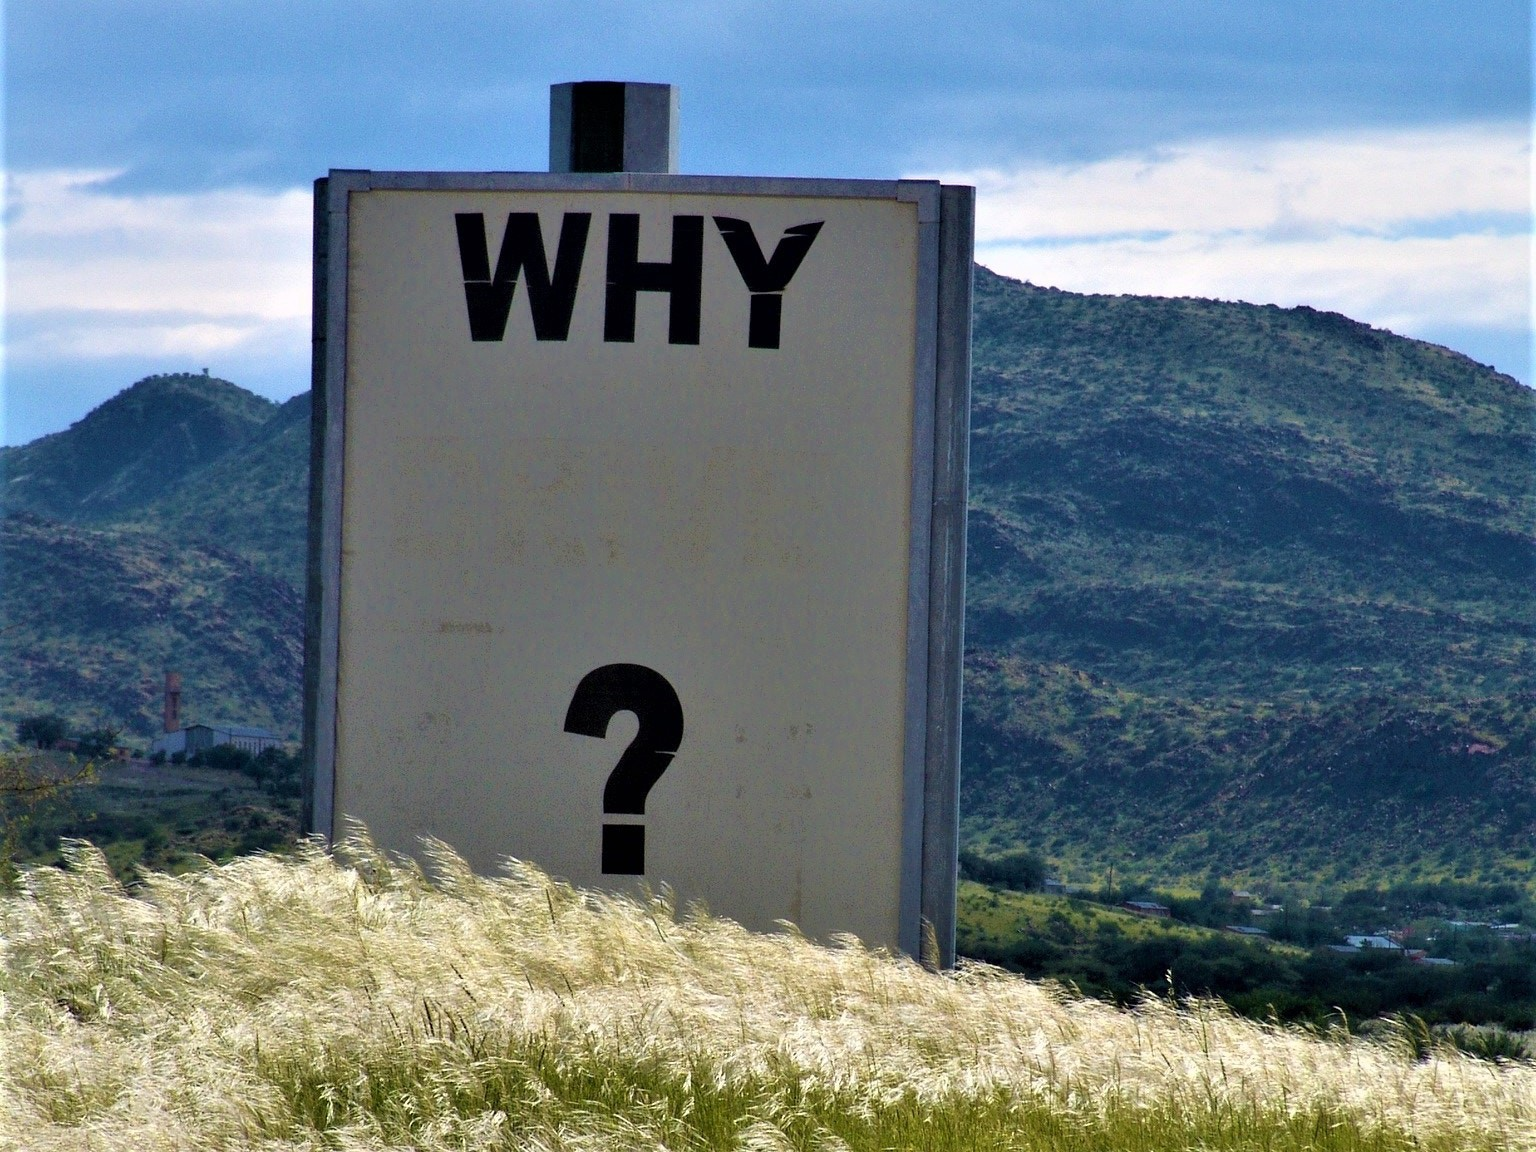 Asking Why instead of What when building great products